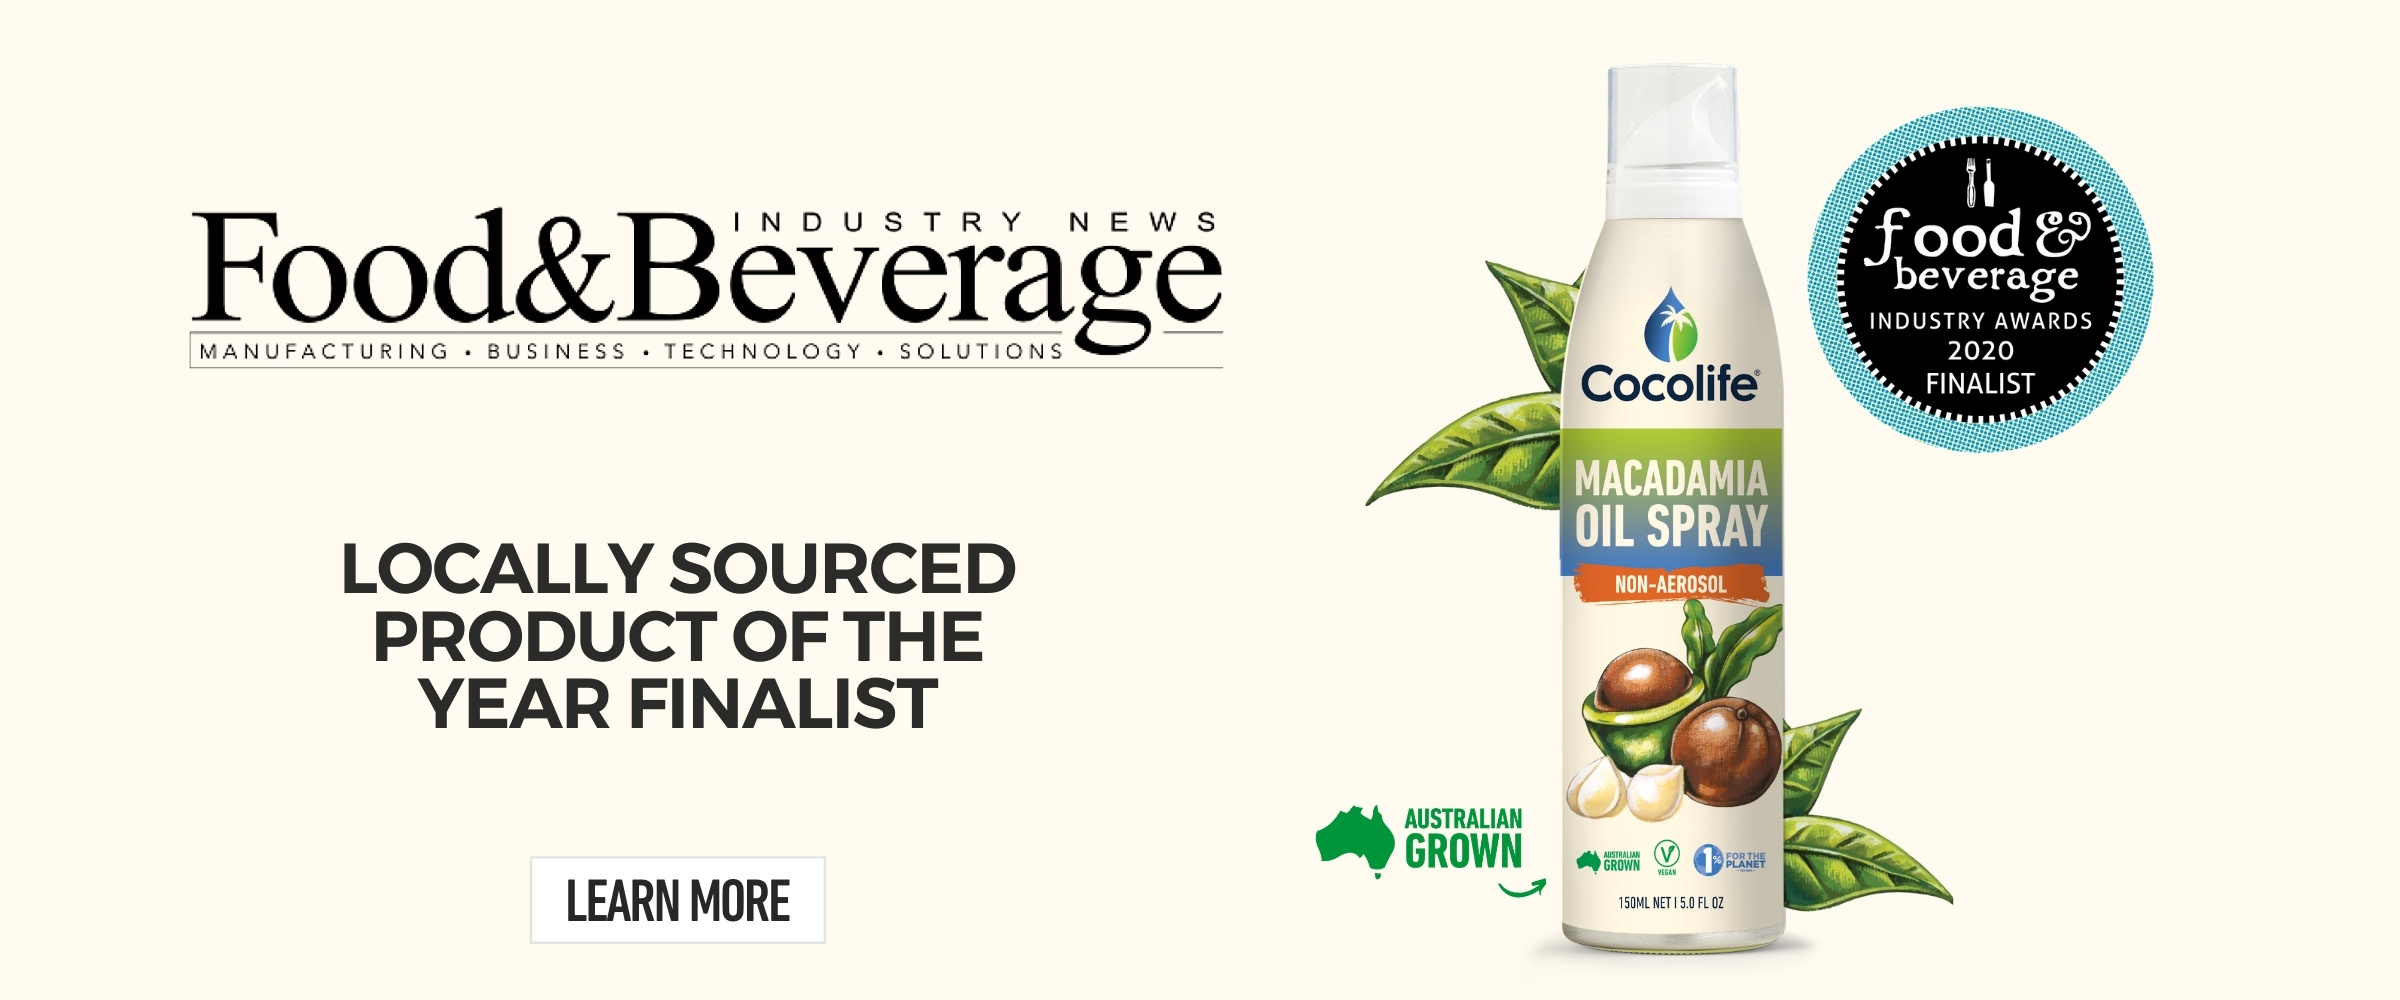 Cocolife's non-aerosol Australian Macadamia Oil Spray named finalist in the 2020 Food & Beverage Industry Awards.